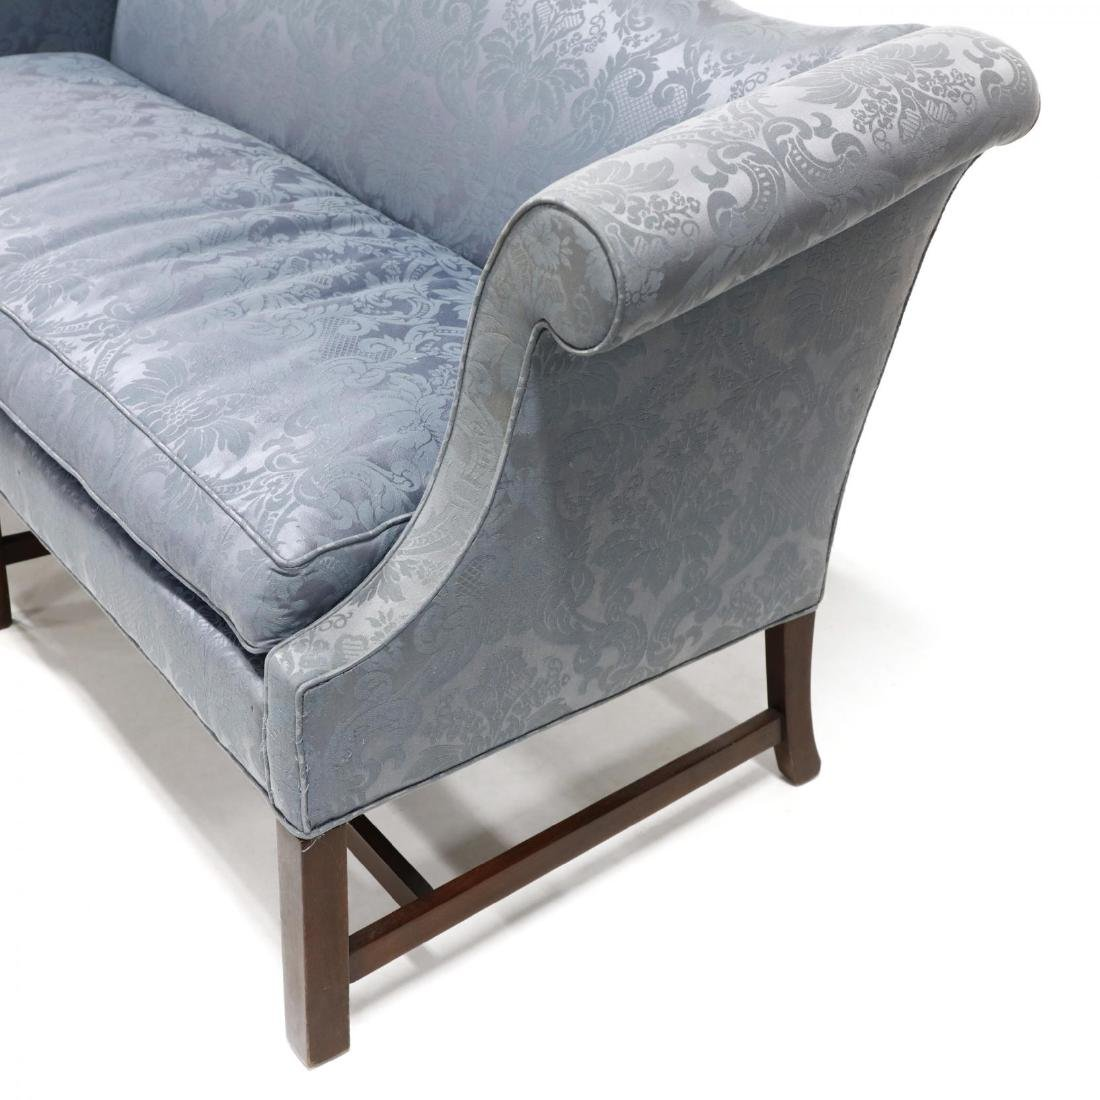 Southwood Chippendale Style Sofa - 3